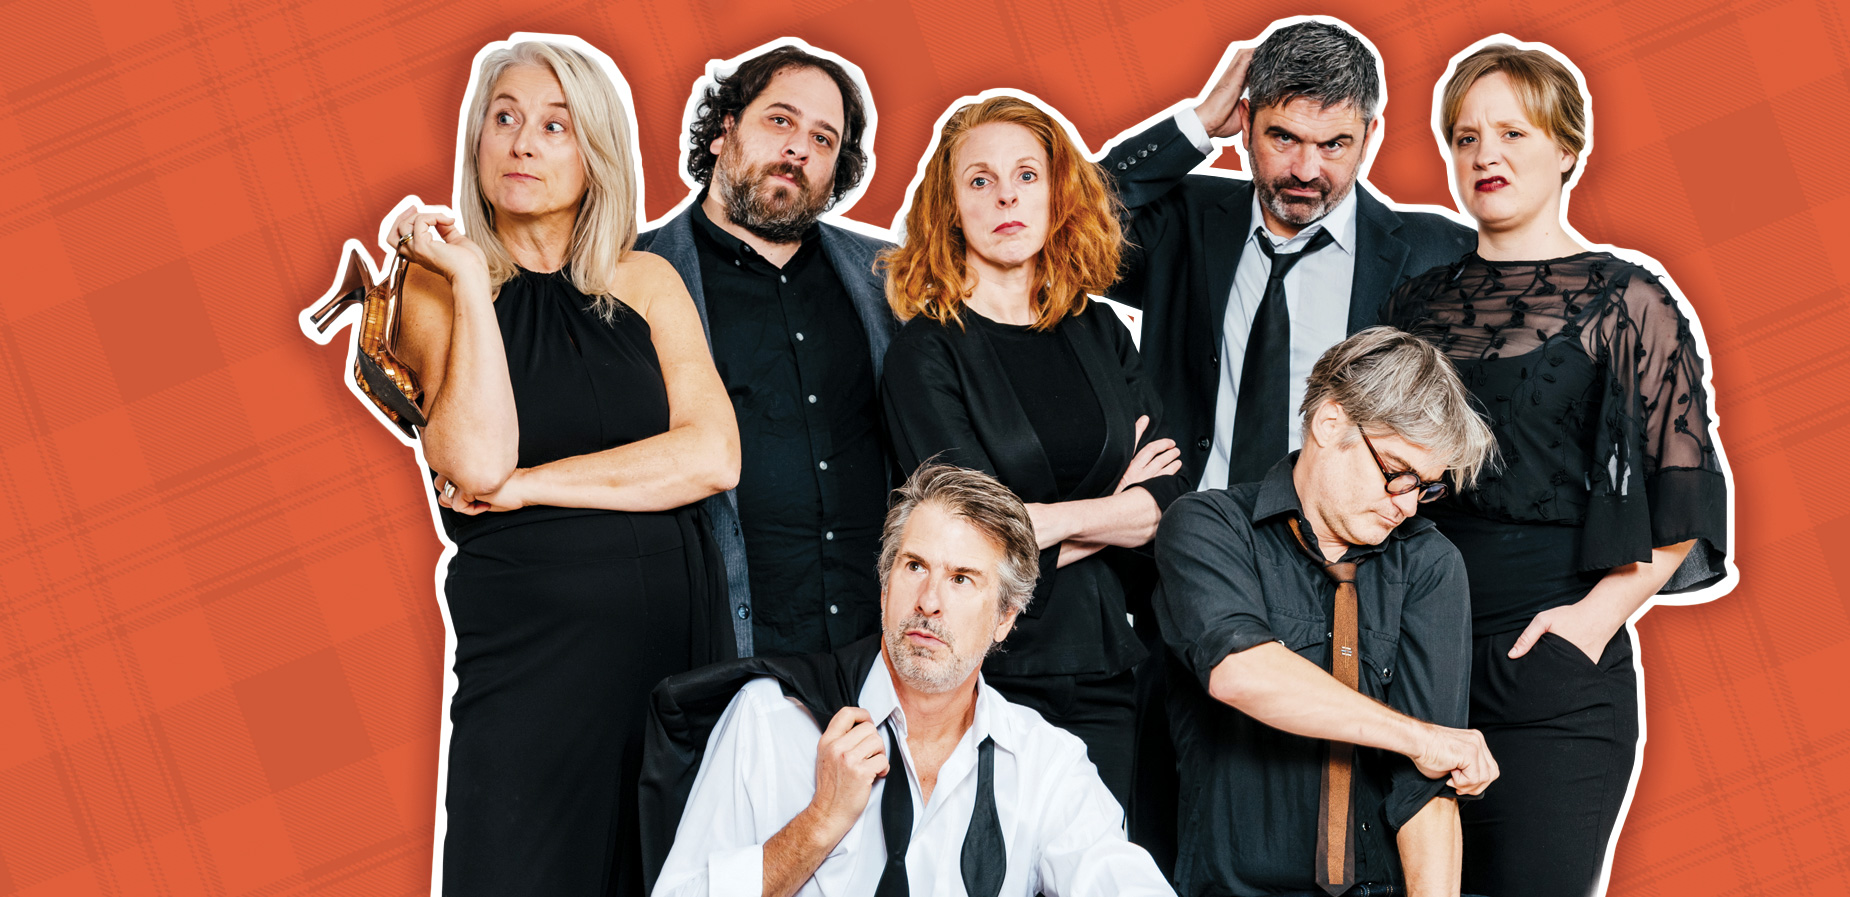 Image Description: A photograph of The County's Artisanal Comedy Troupe: TASTE THAT! against a red, plaid background